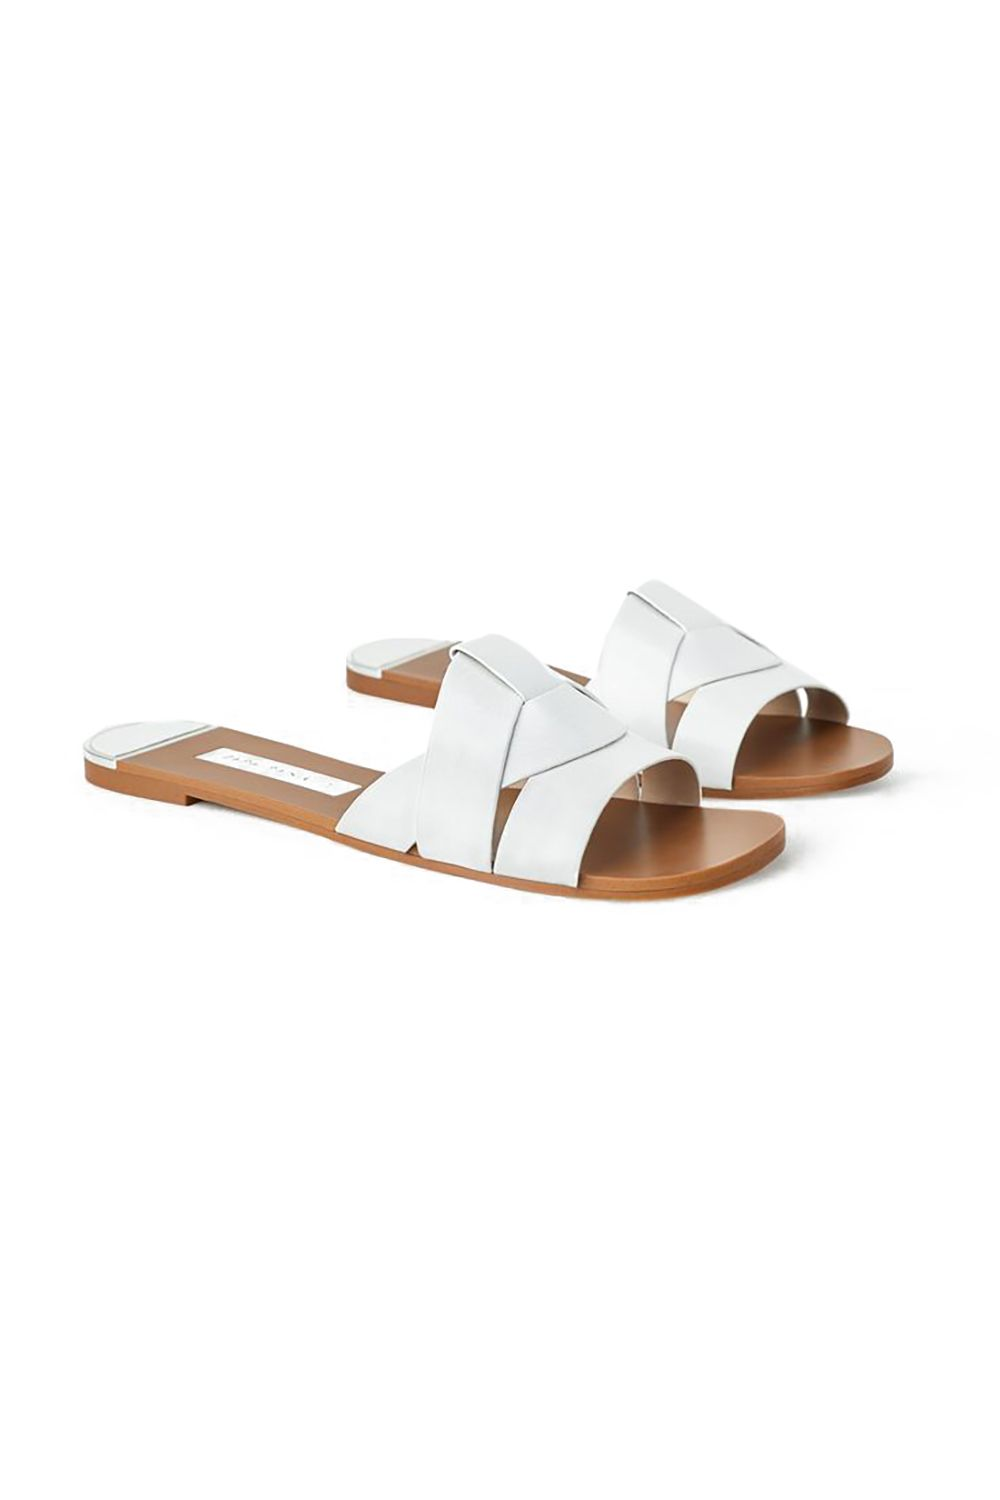 Poolside Flats Zara, $46 SHOP IT A pair of new sandals for spring is a must. These are not only super easy to slip on, they come in four different color options.